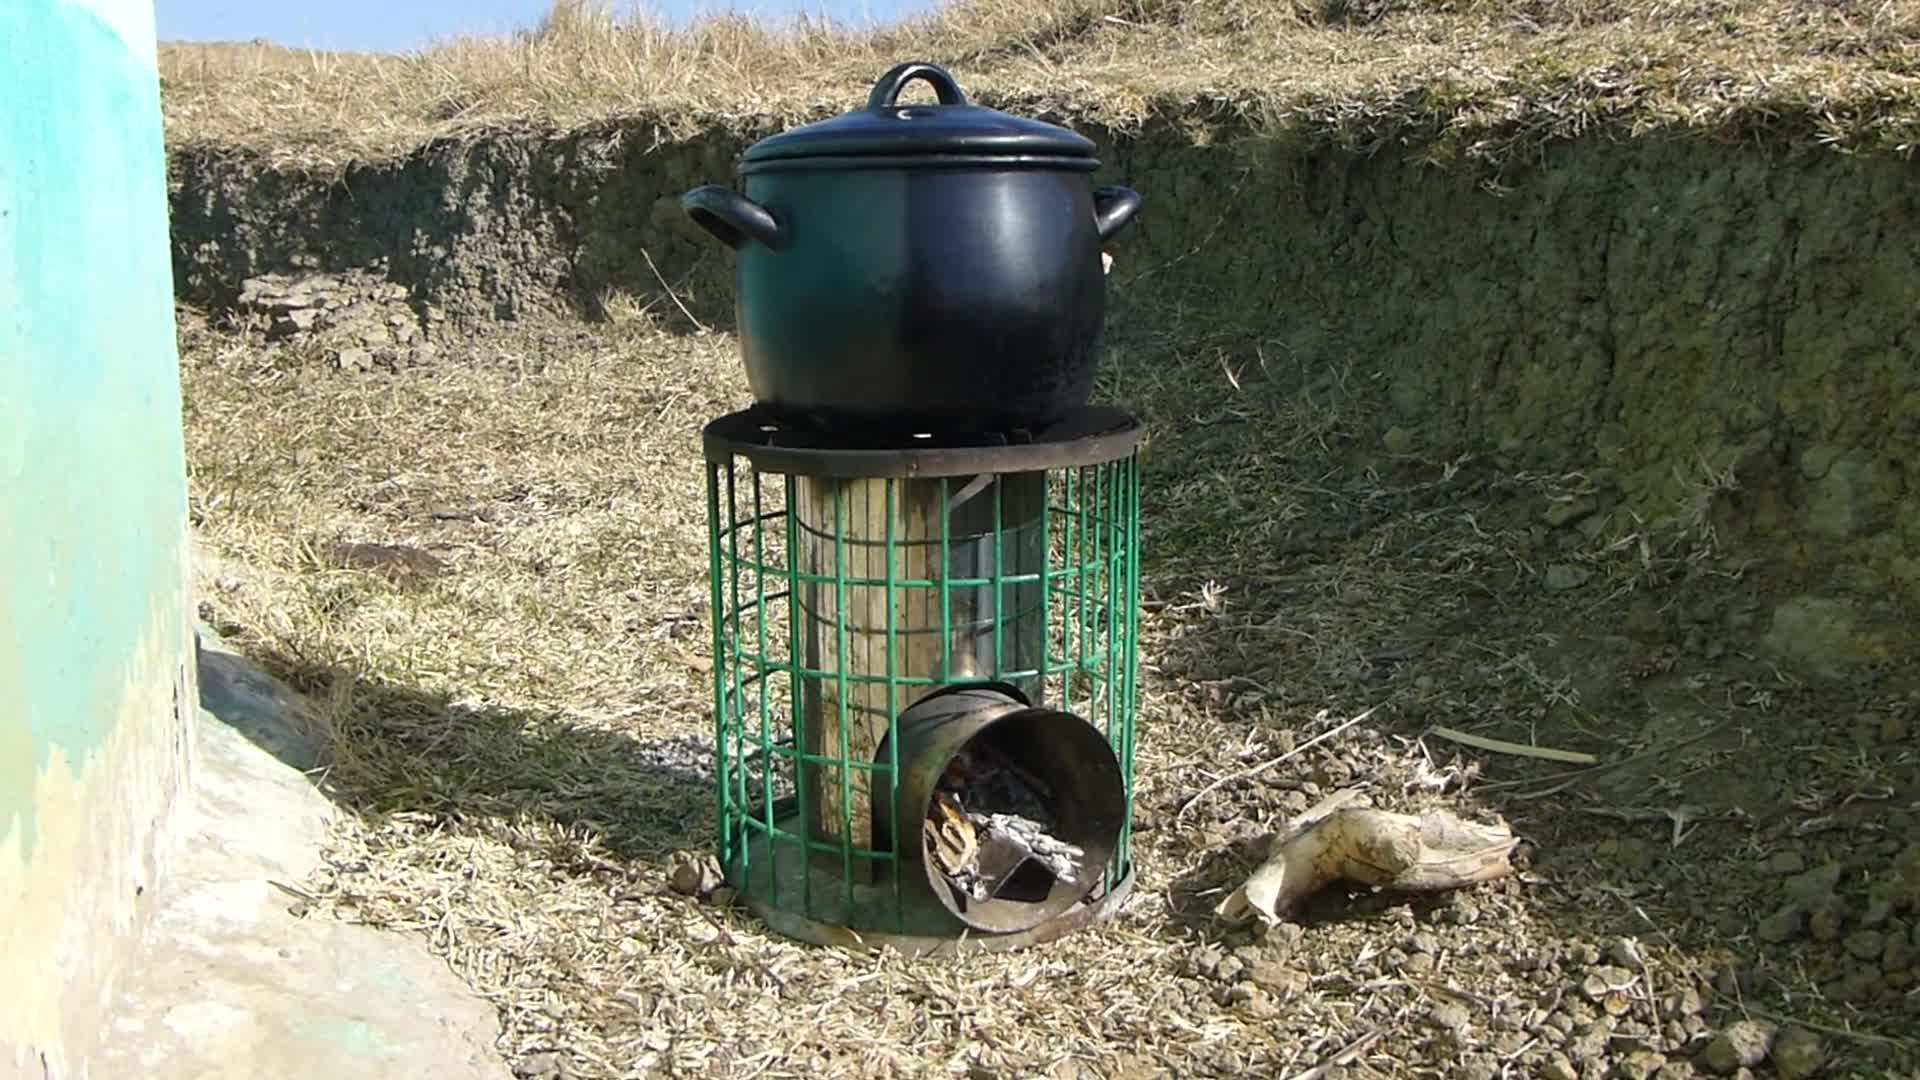 File:Efficient wood burning stove in South Africa.webm - Wikimedia ...